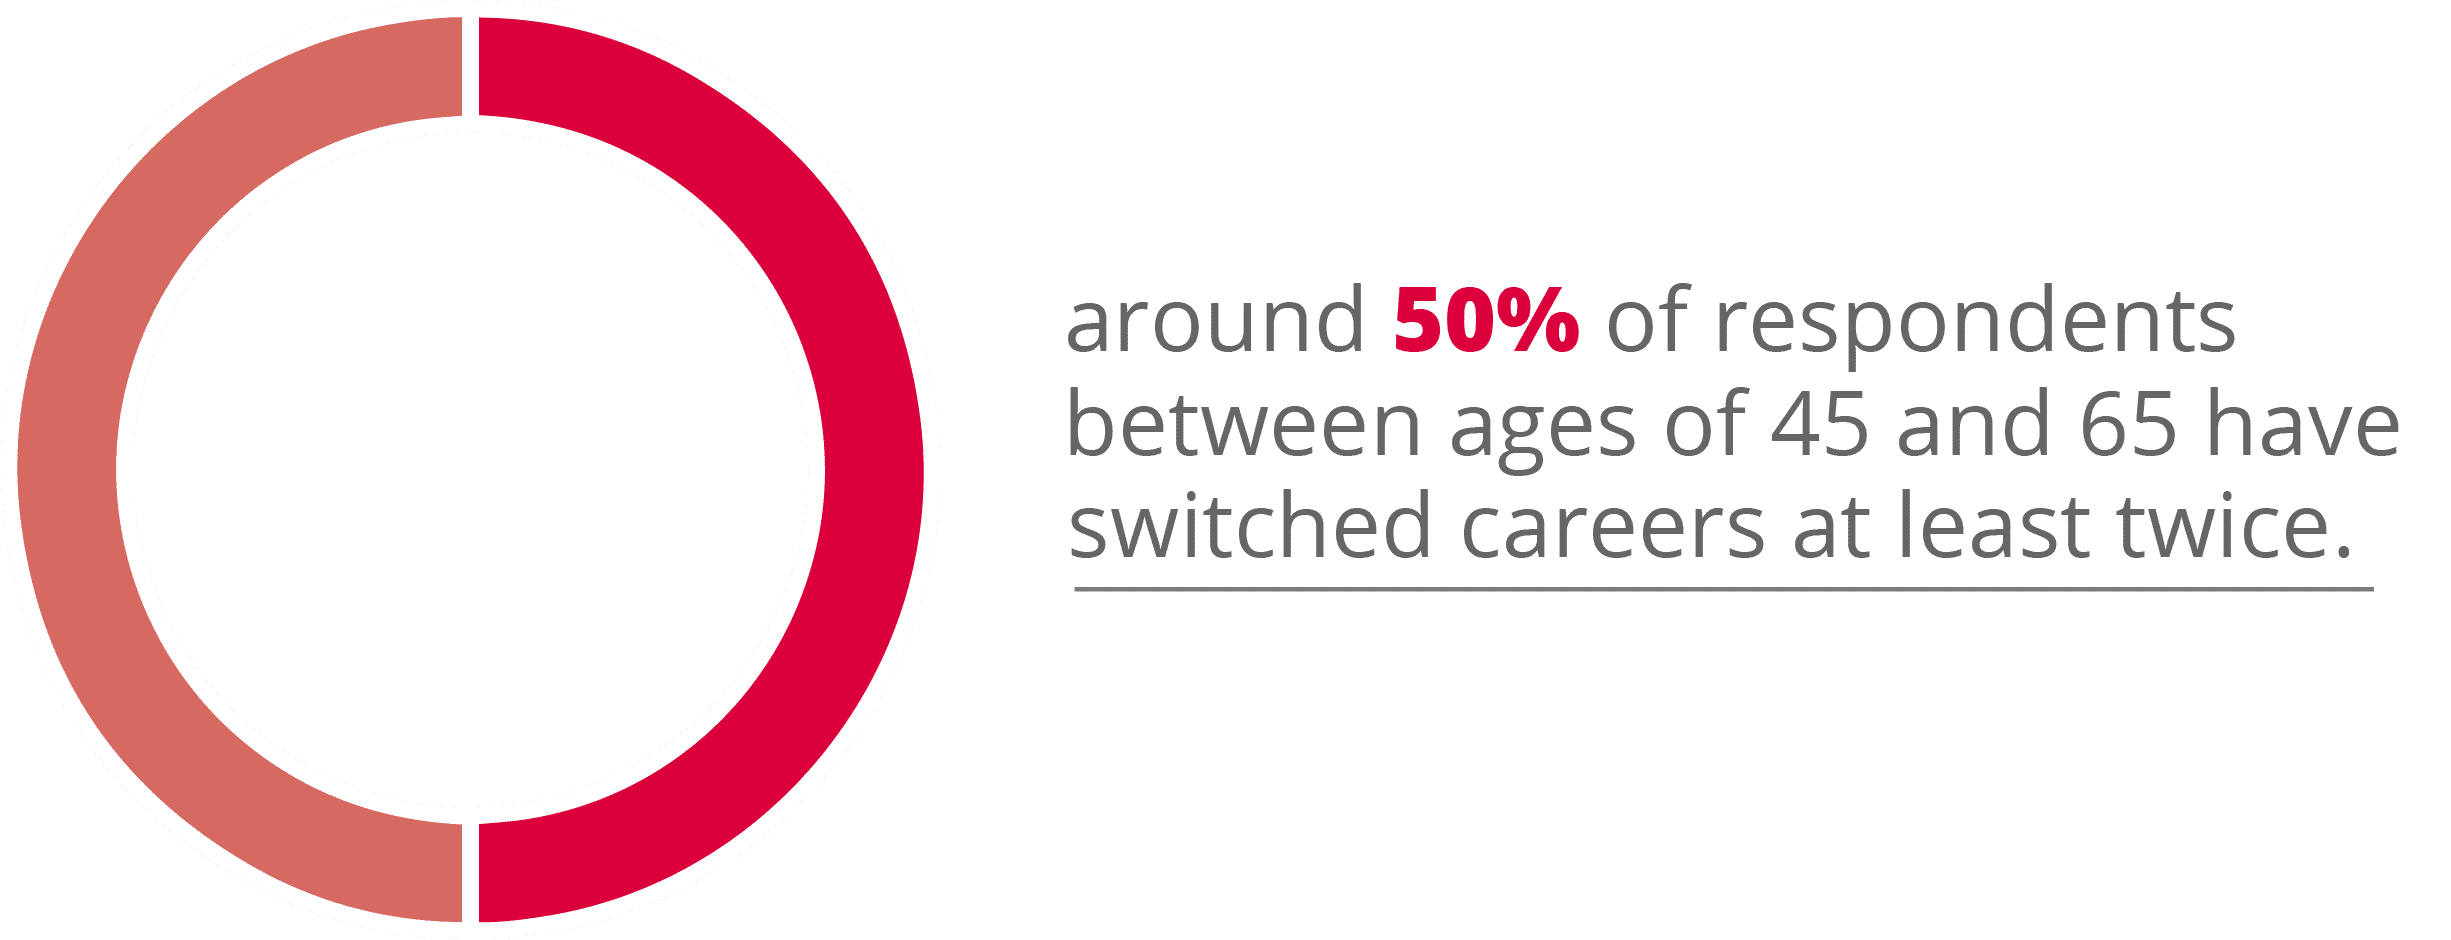 50% of respondents have switched careers at least twice